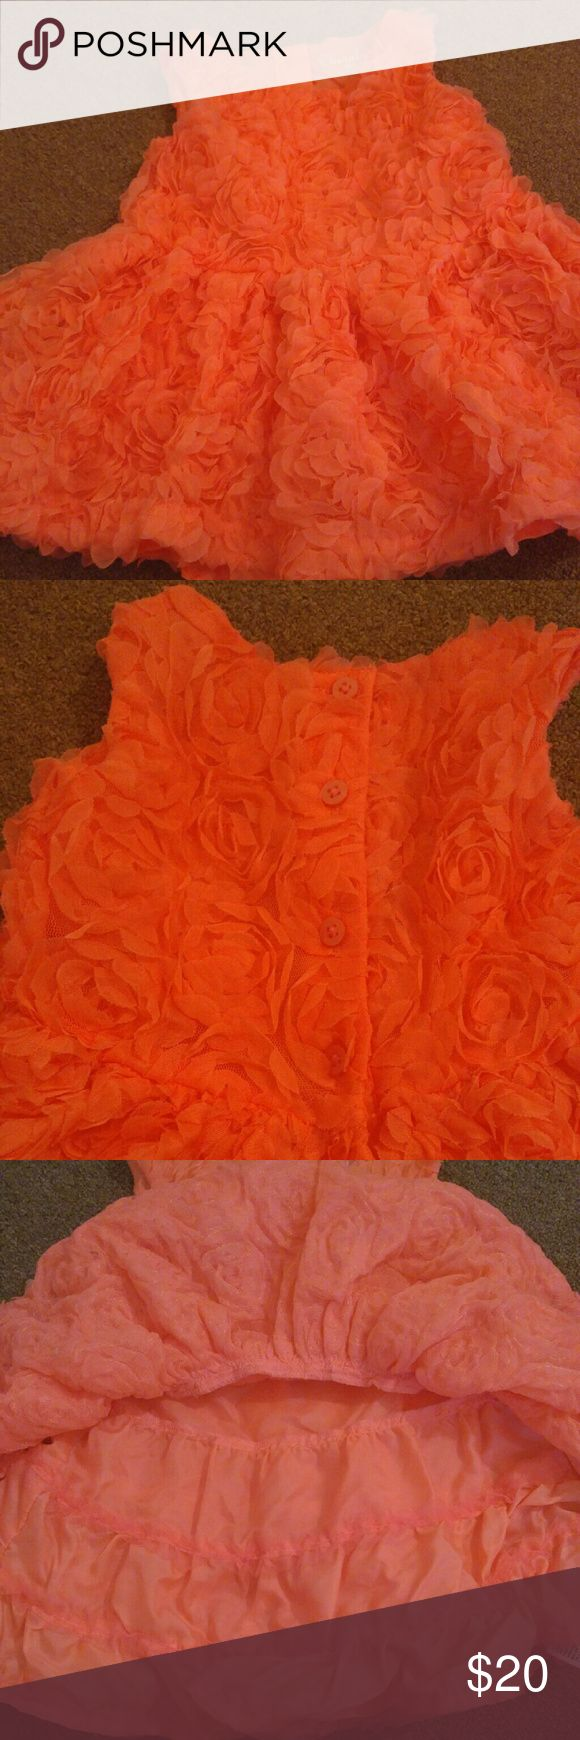 CHEROKEE BEAUTIFUL DRESS TONS OF ROSETTES THIS IS A CORAL COLOR DRESS ADORNED WITH ROSETTES FOR YOUR CUTIE PIE Cherokee Dresses Formal